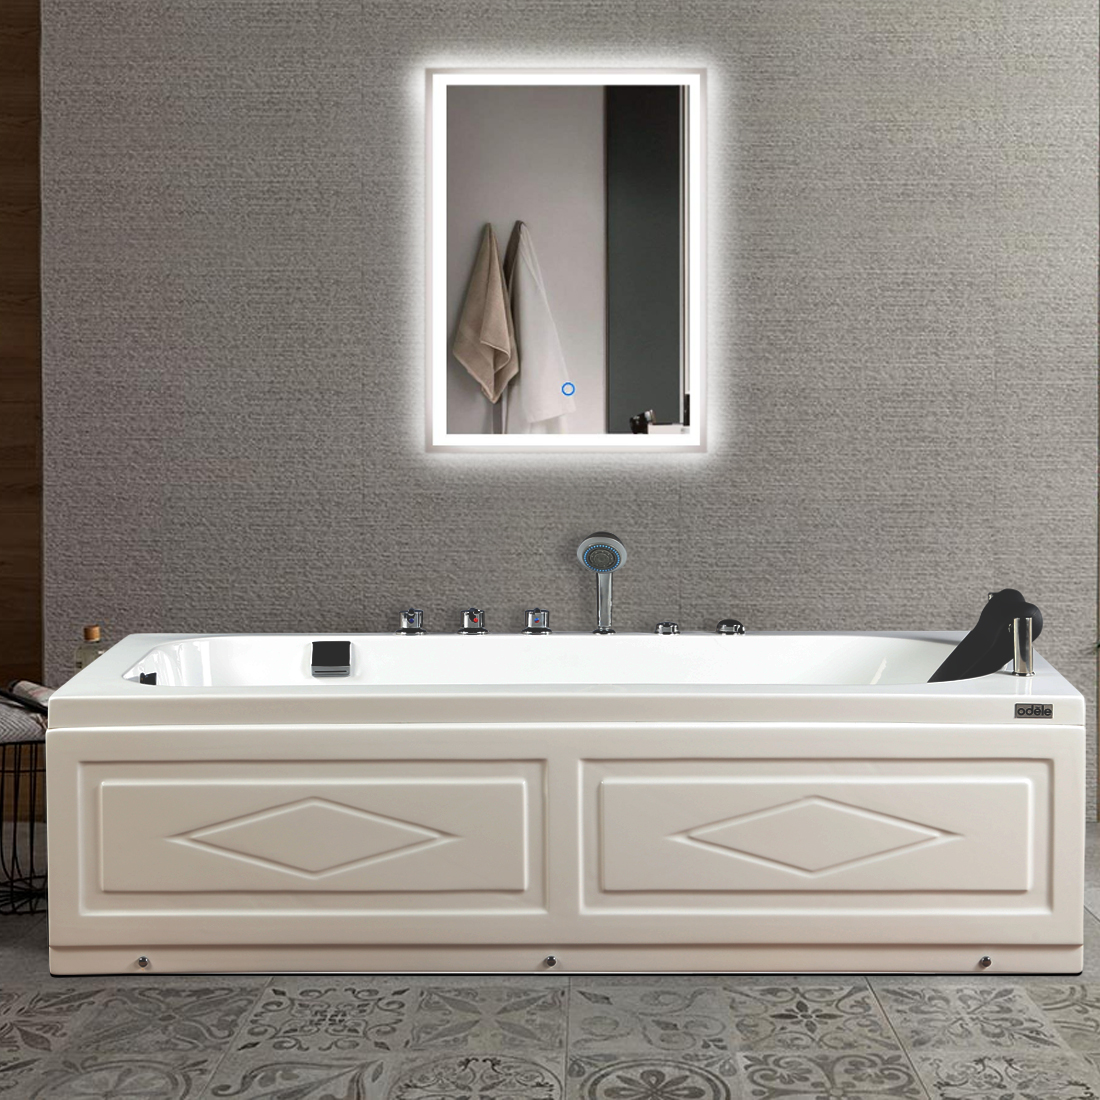 Emotion Bath Tub in White Colour by HomeTown